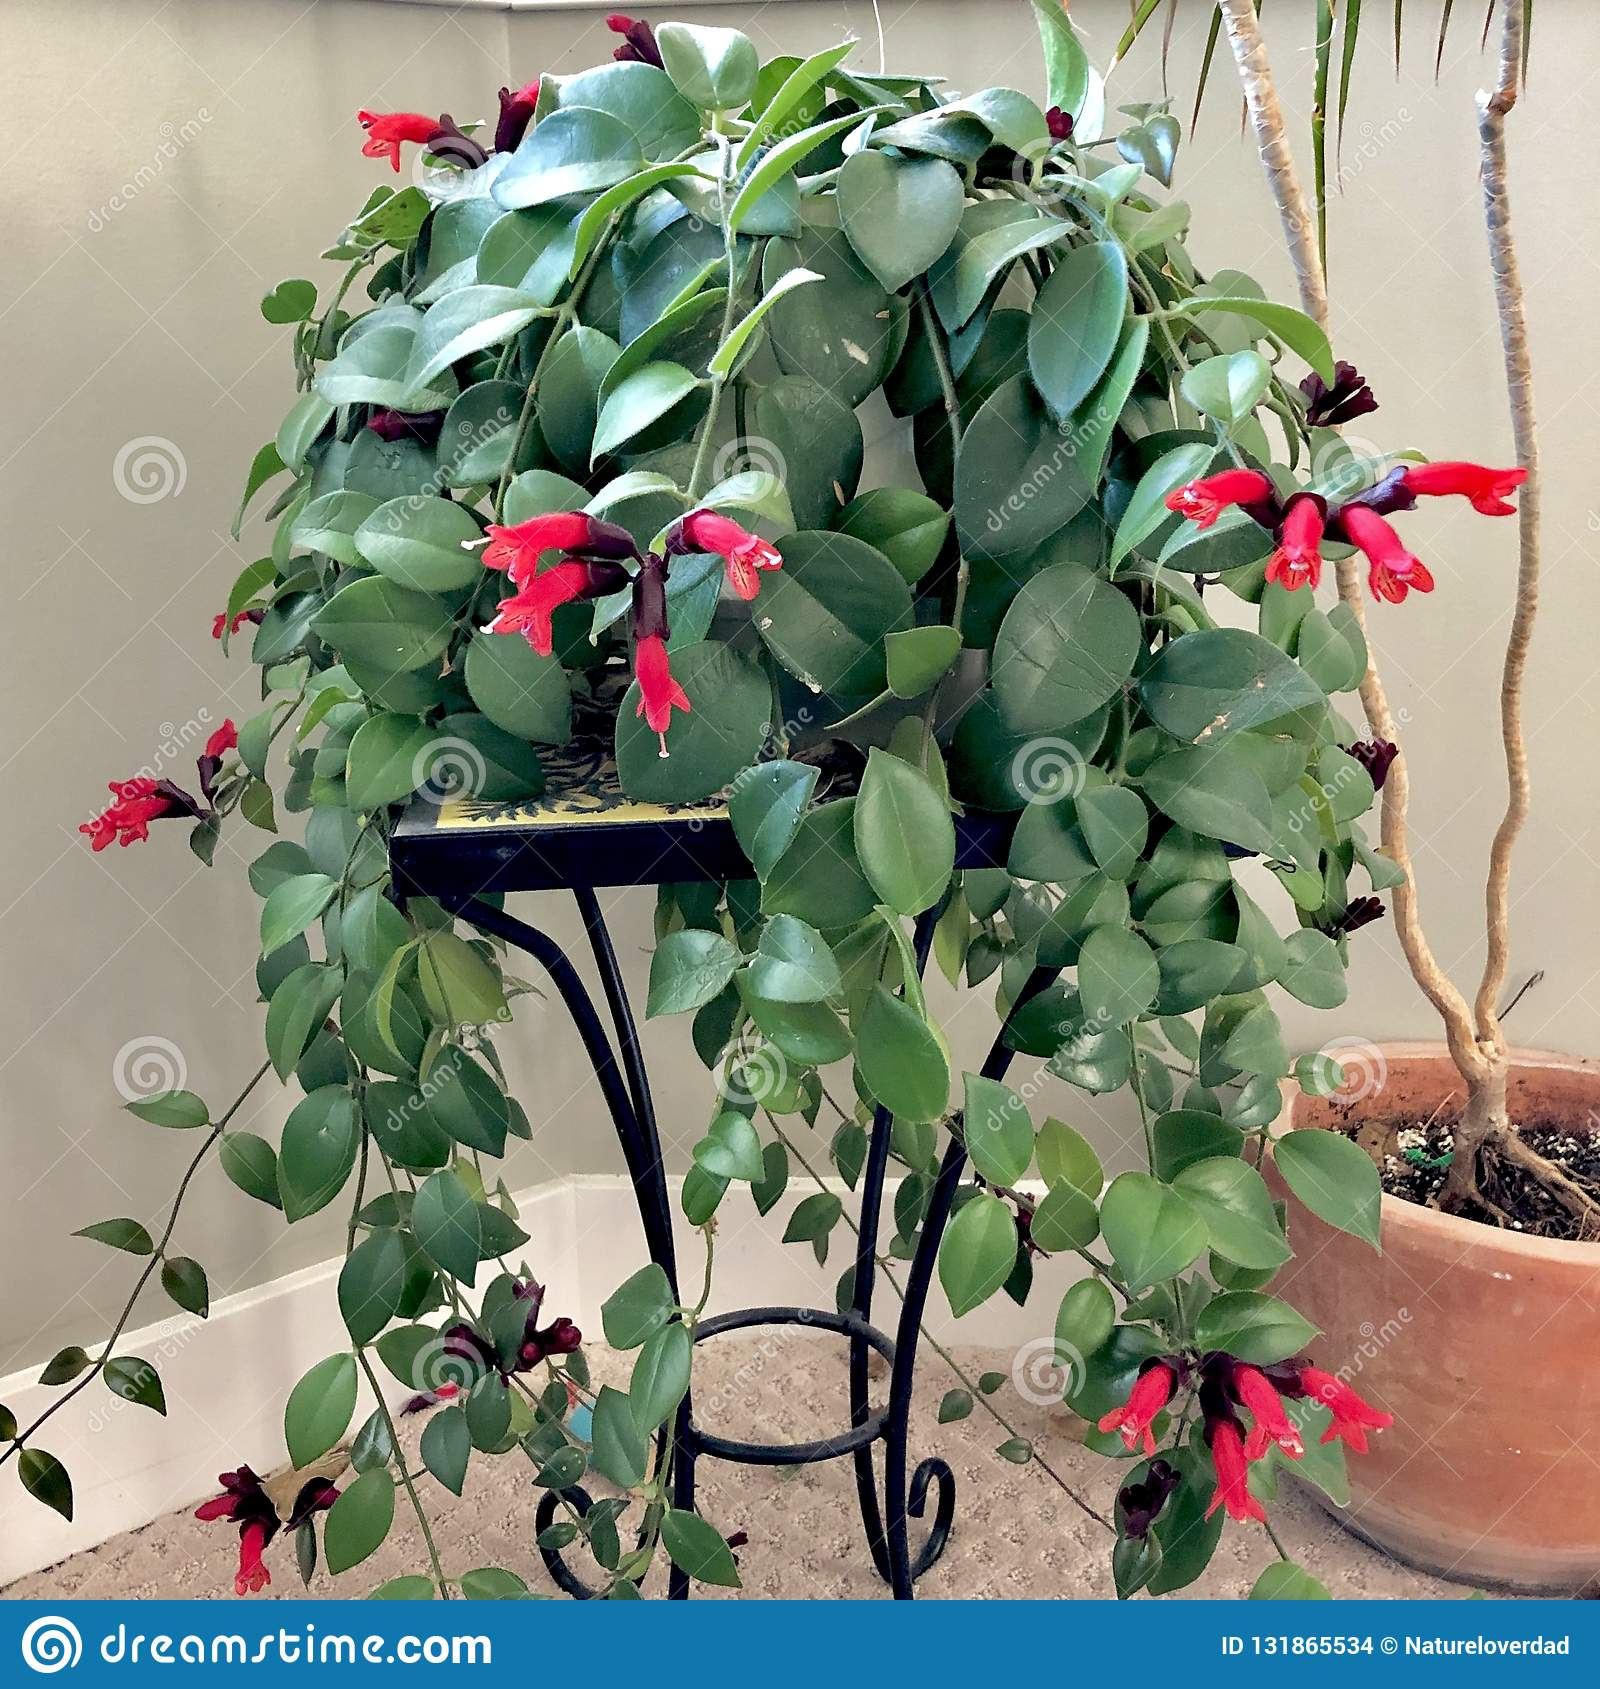 Lipstick Plant Stock Photo Image Of Houseplant Bloom 131865534